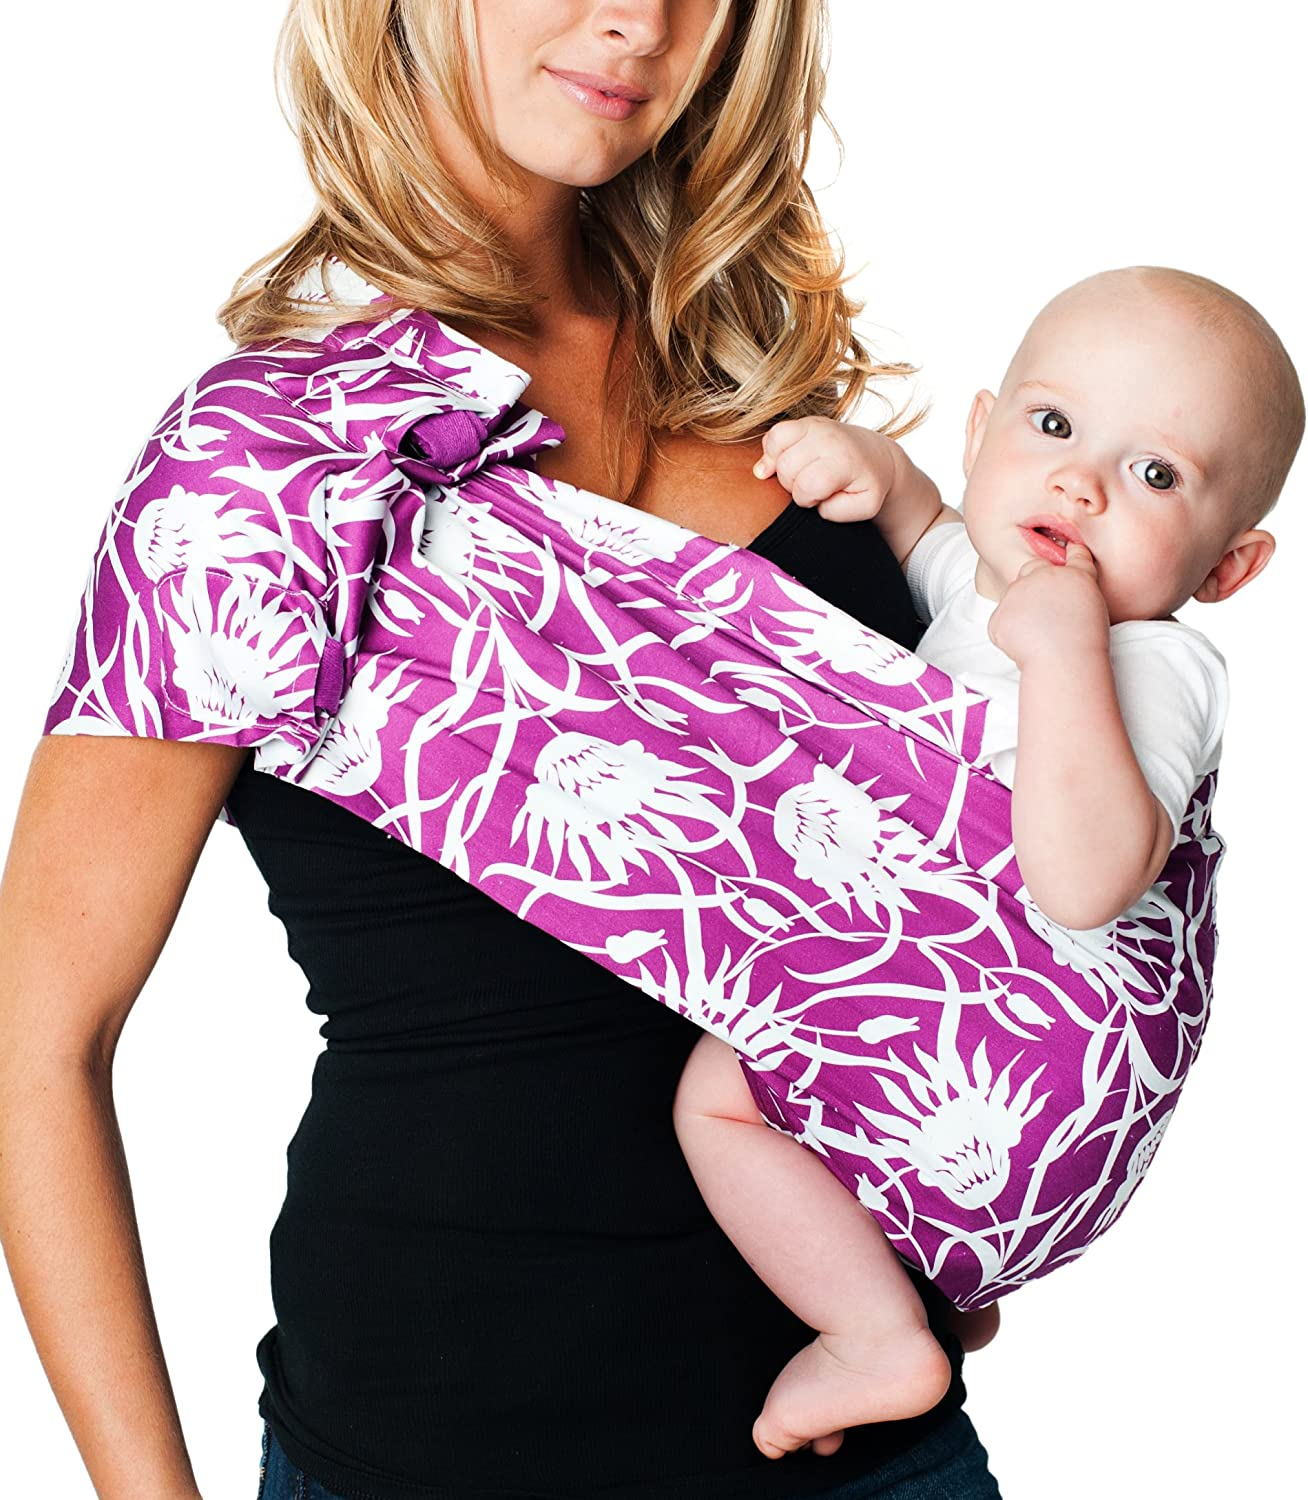 Hotsling s AP Baby Sling